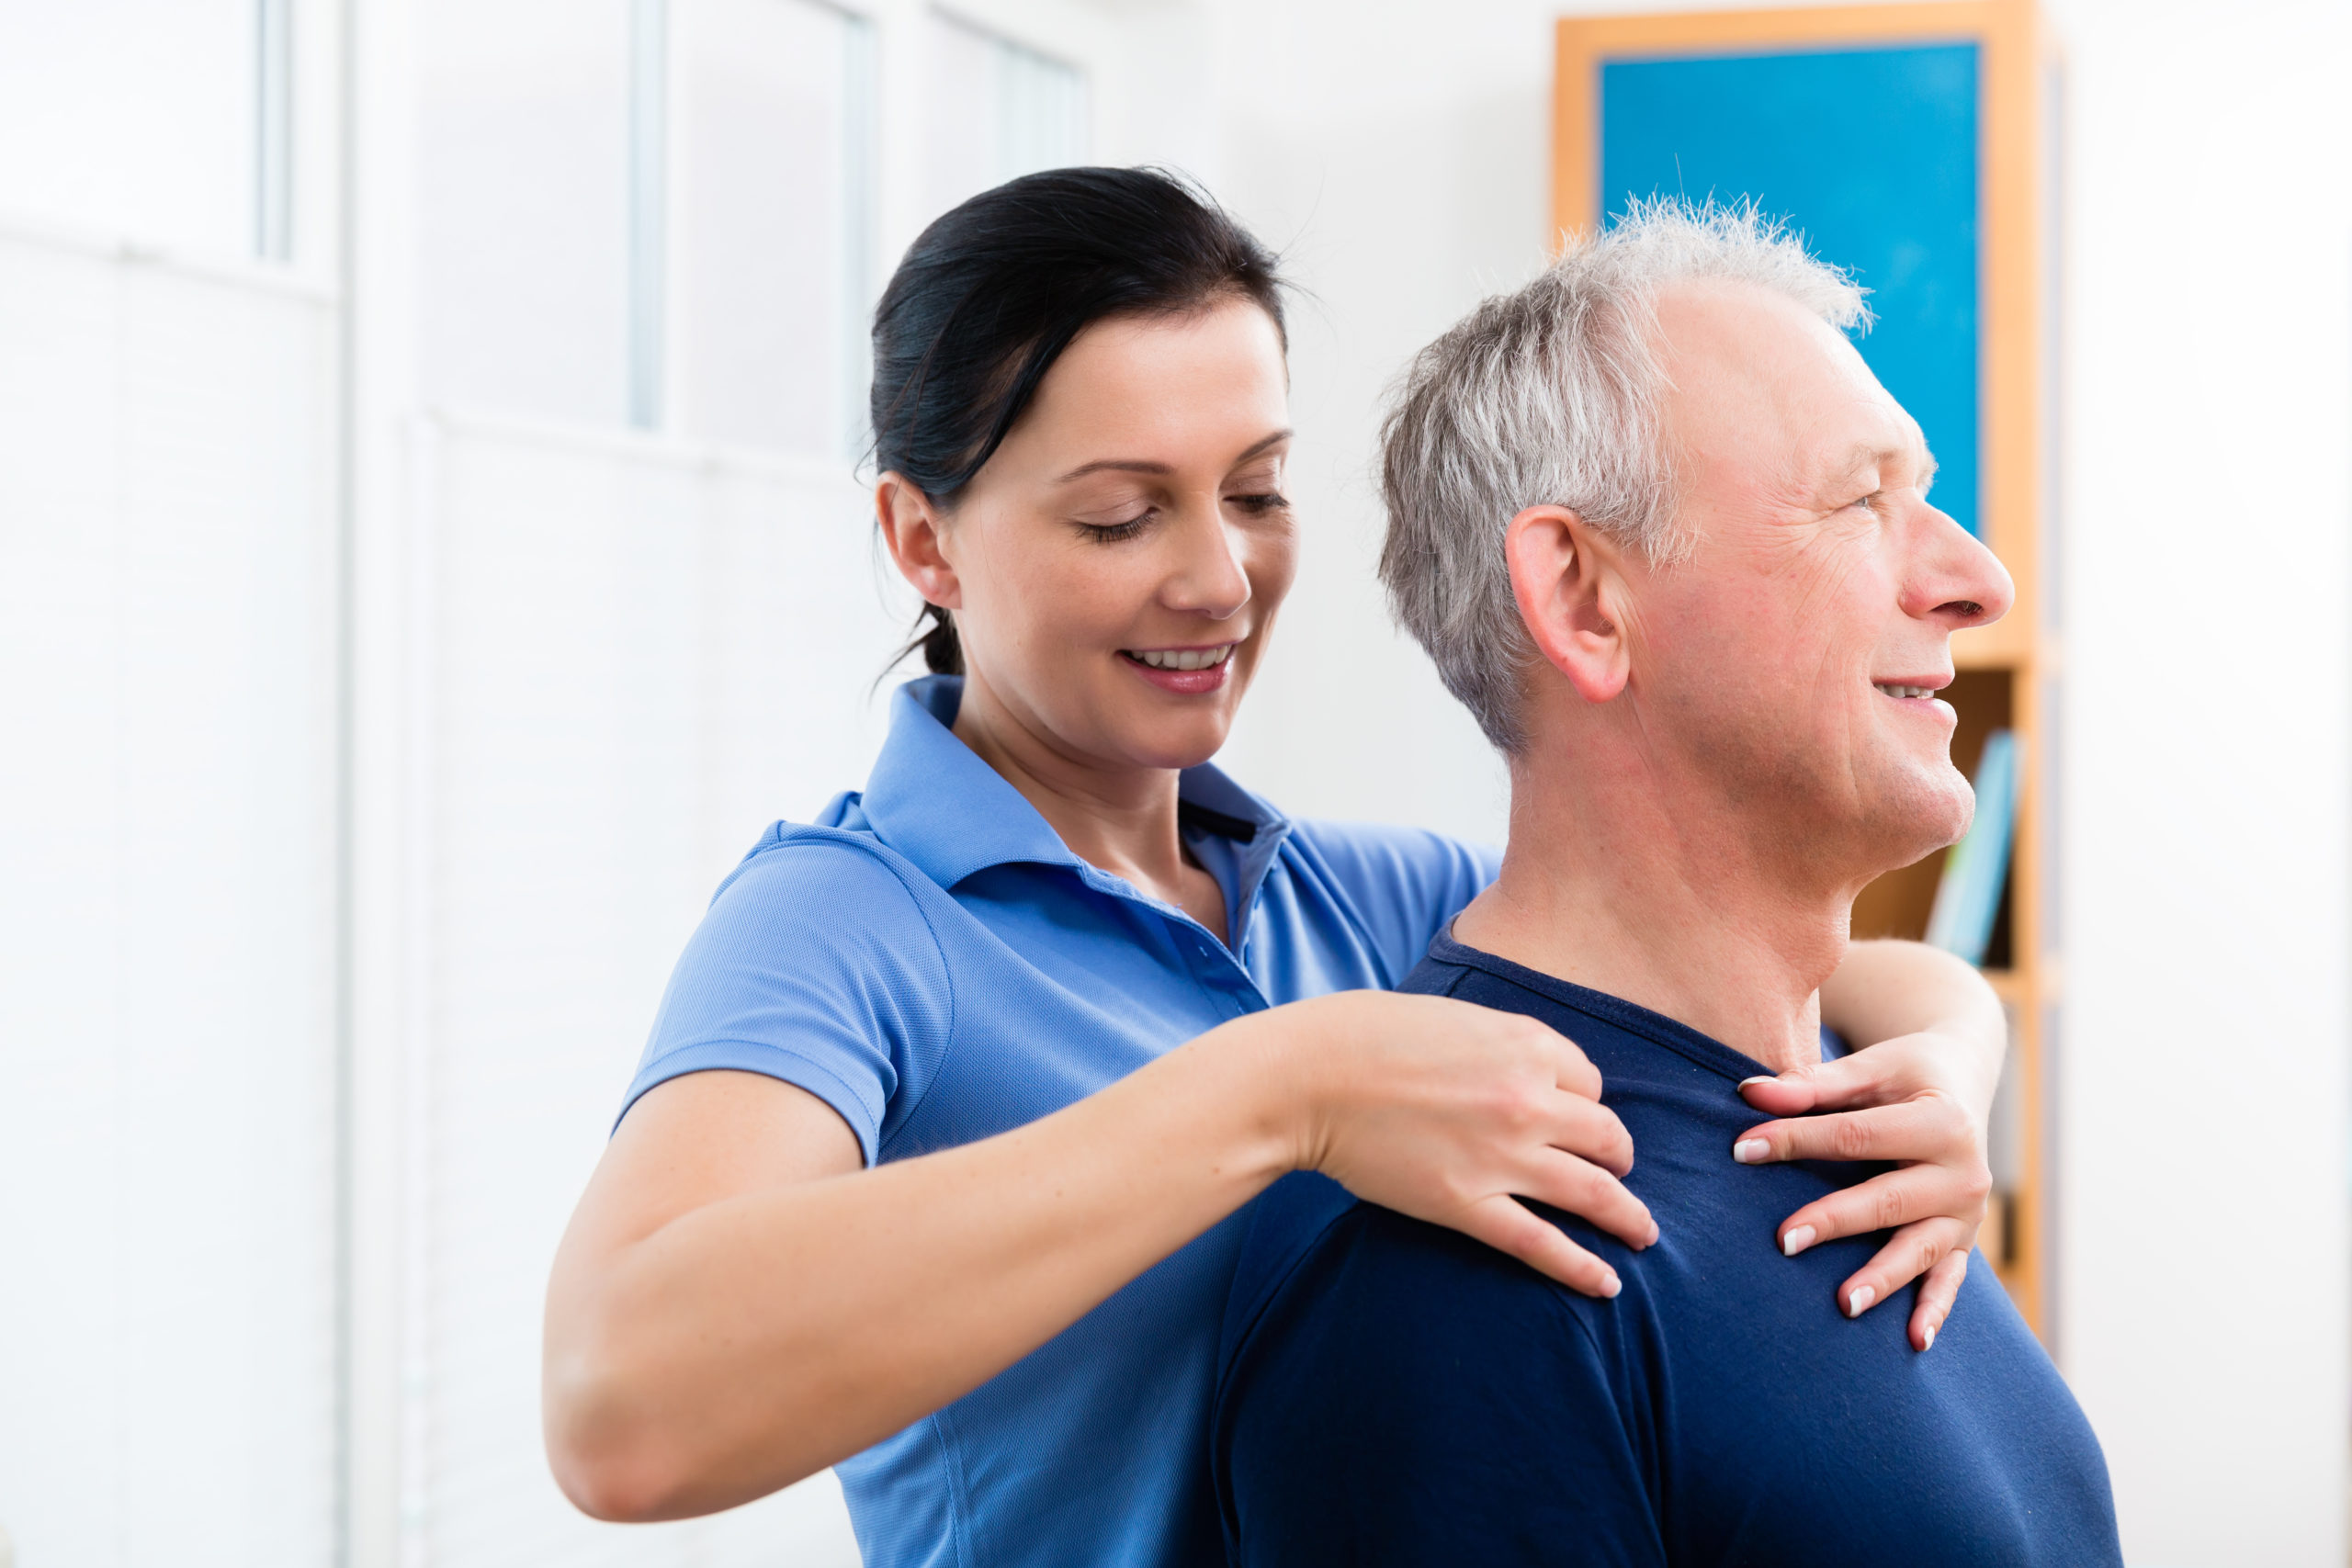 physio for aches and pains - Home Physio Group